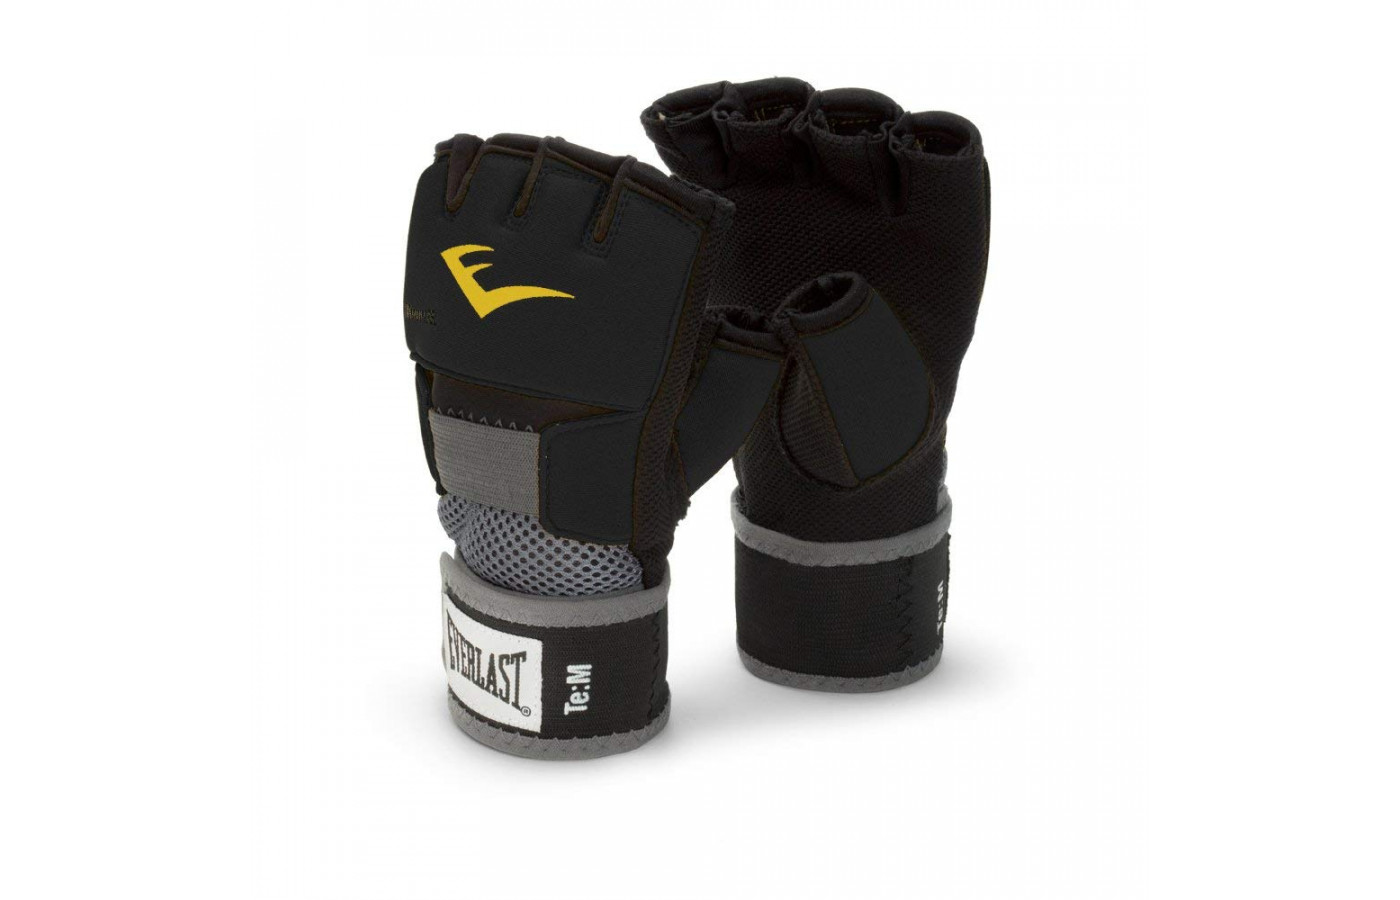 everlast gel wraps black